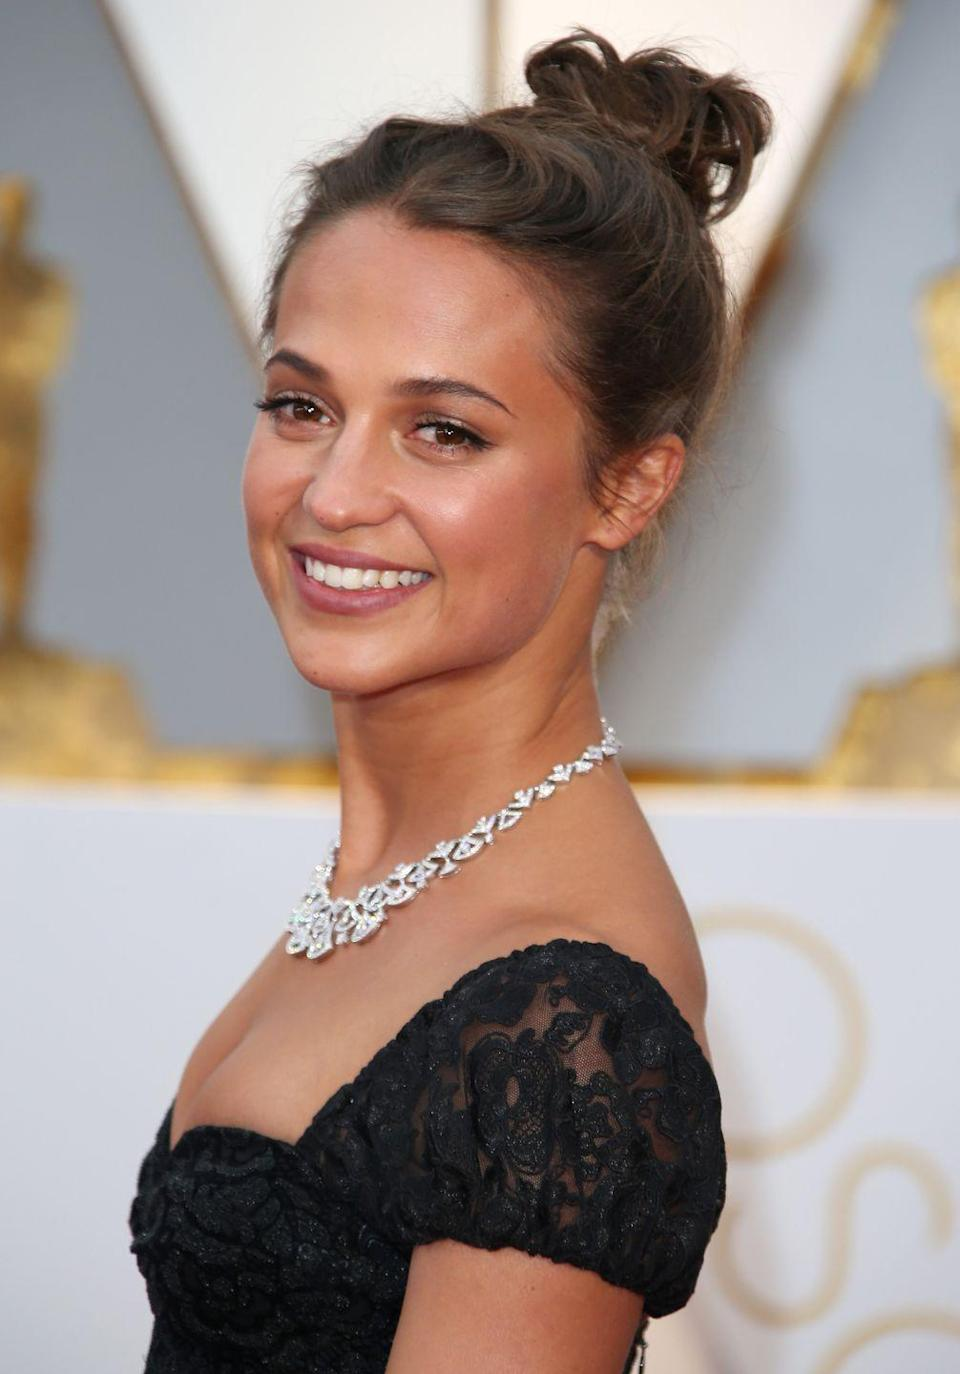 "<p><strong>Correction pronunciation: </strong>Ah-liss-ee-ah Vic-and-er</p><p><strong>Tip: </strong>The Oscar winner explained the Americanized version of her surname to <a href=""https://www.youtube.com/watch?v=lz6iHGCkw-o"" rel=""nofollow noopener"" target=""_blank"" data-ylk=""slk:Jimmy Kimmel"" class=""link rapid-noclick-resp"">Jimmy Kimmel</a>. Warning: The Swedish version is much trickier. </p>"